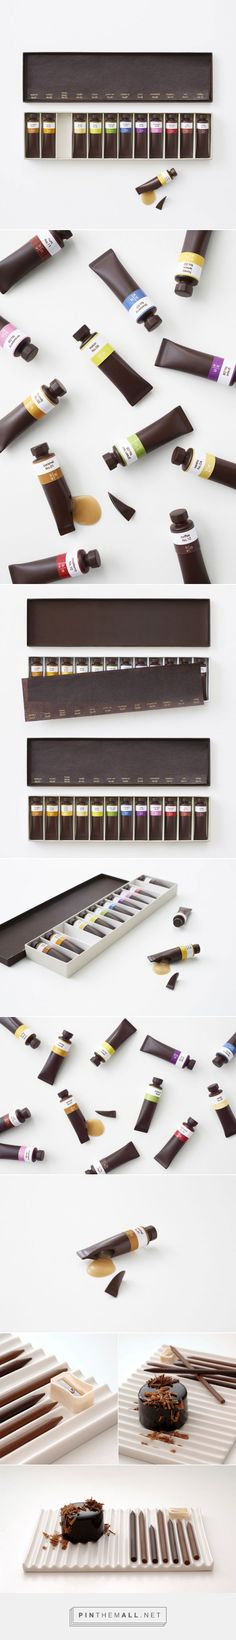 Edible Chocolate Paint Tubes by Nendo | Yatzer